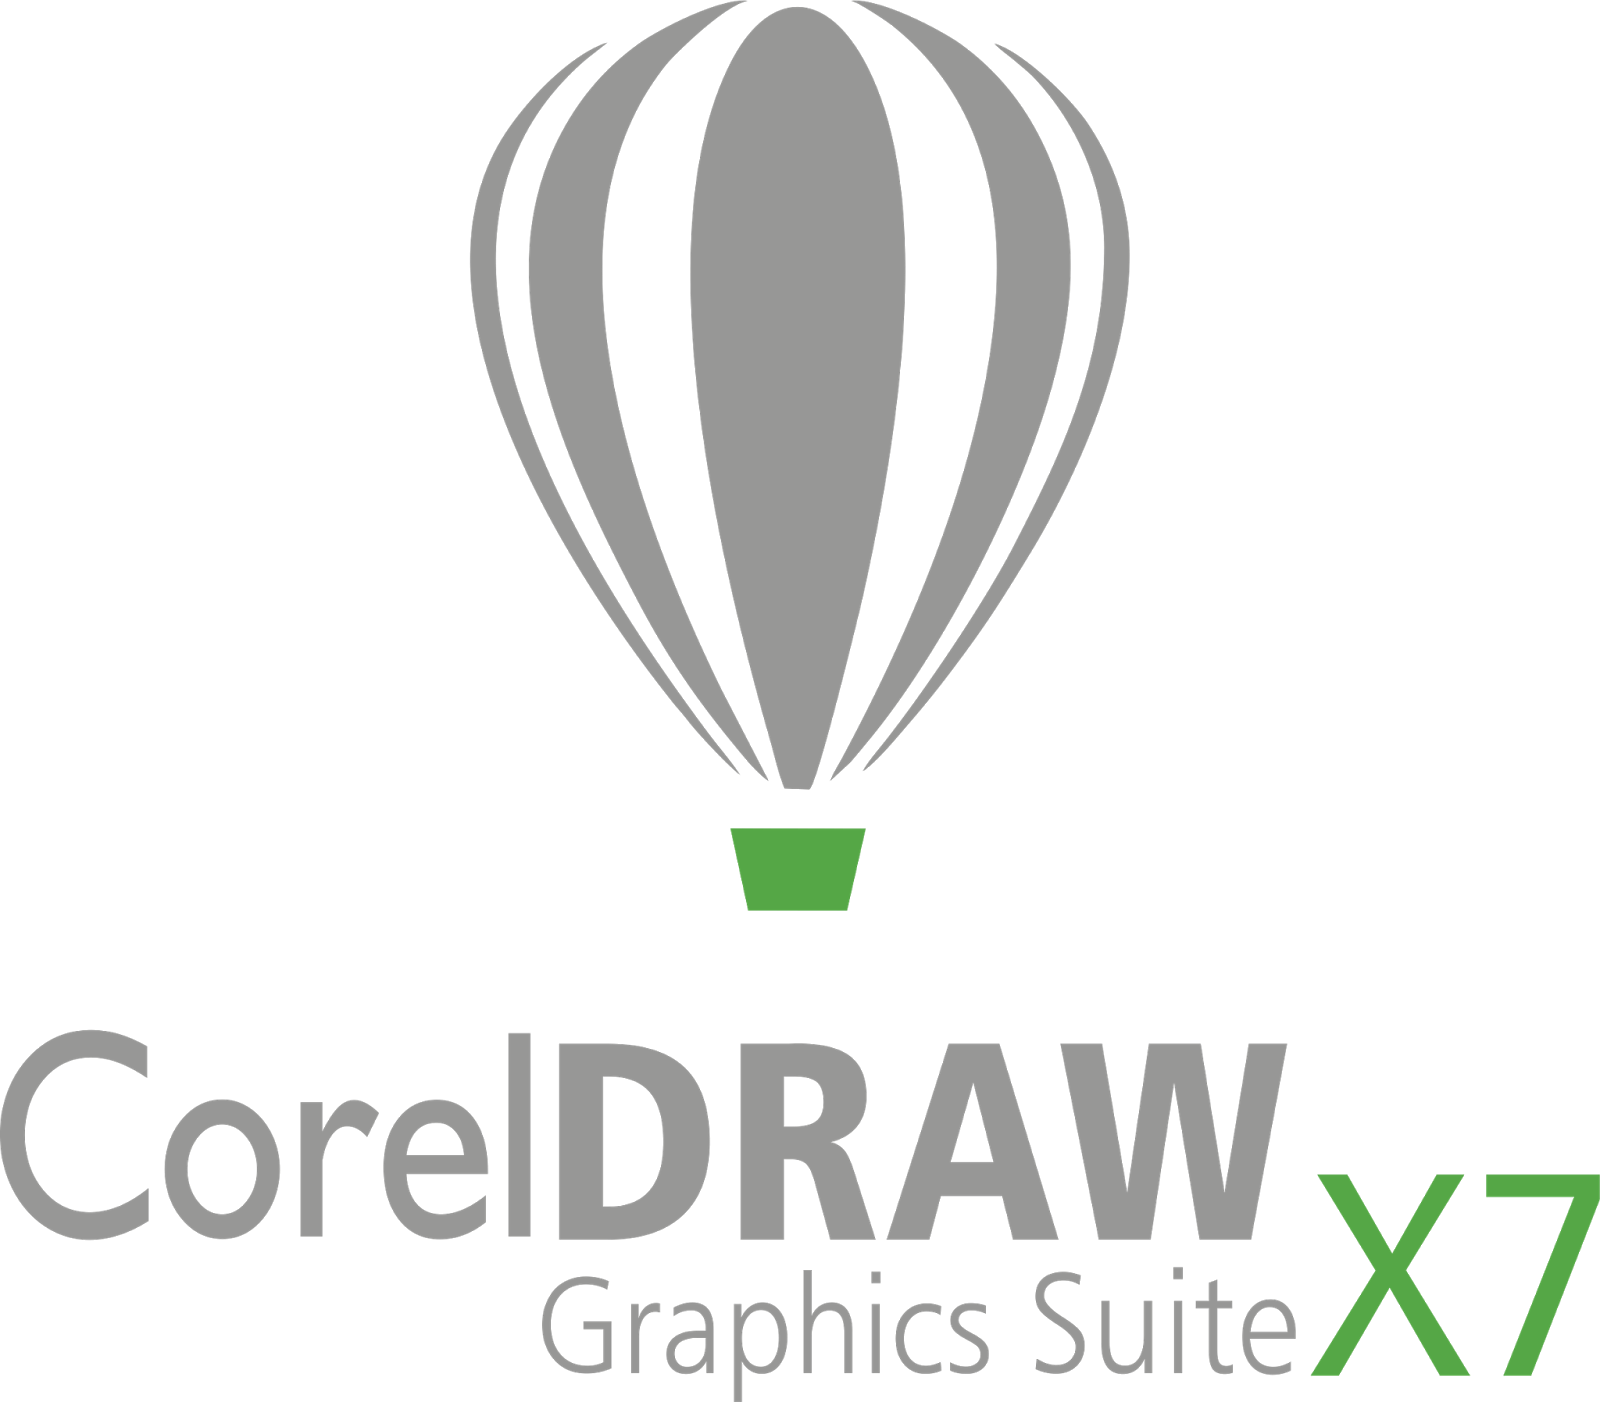 Coreldraw Png Free Cdr & Free Coreldraw Cdr.png Transparent Images.